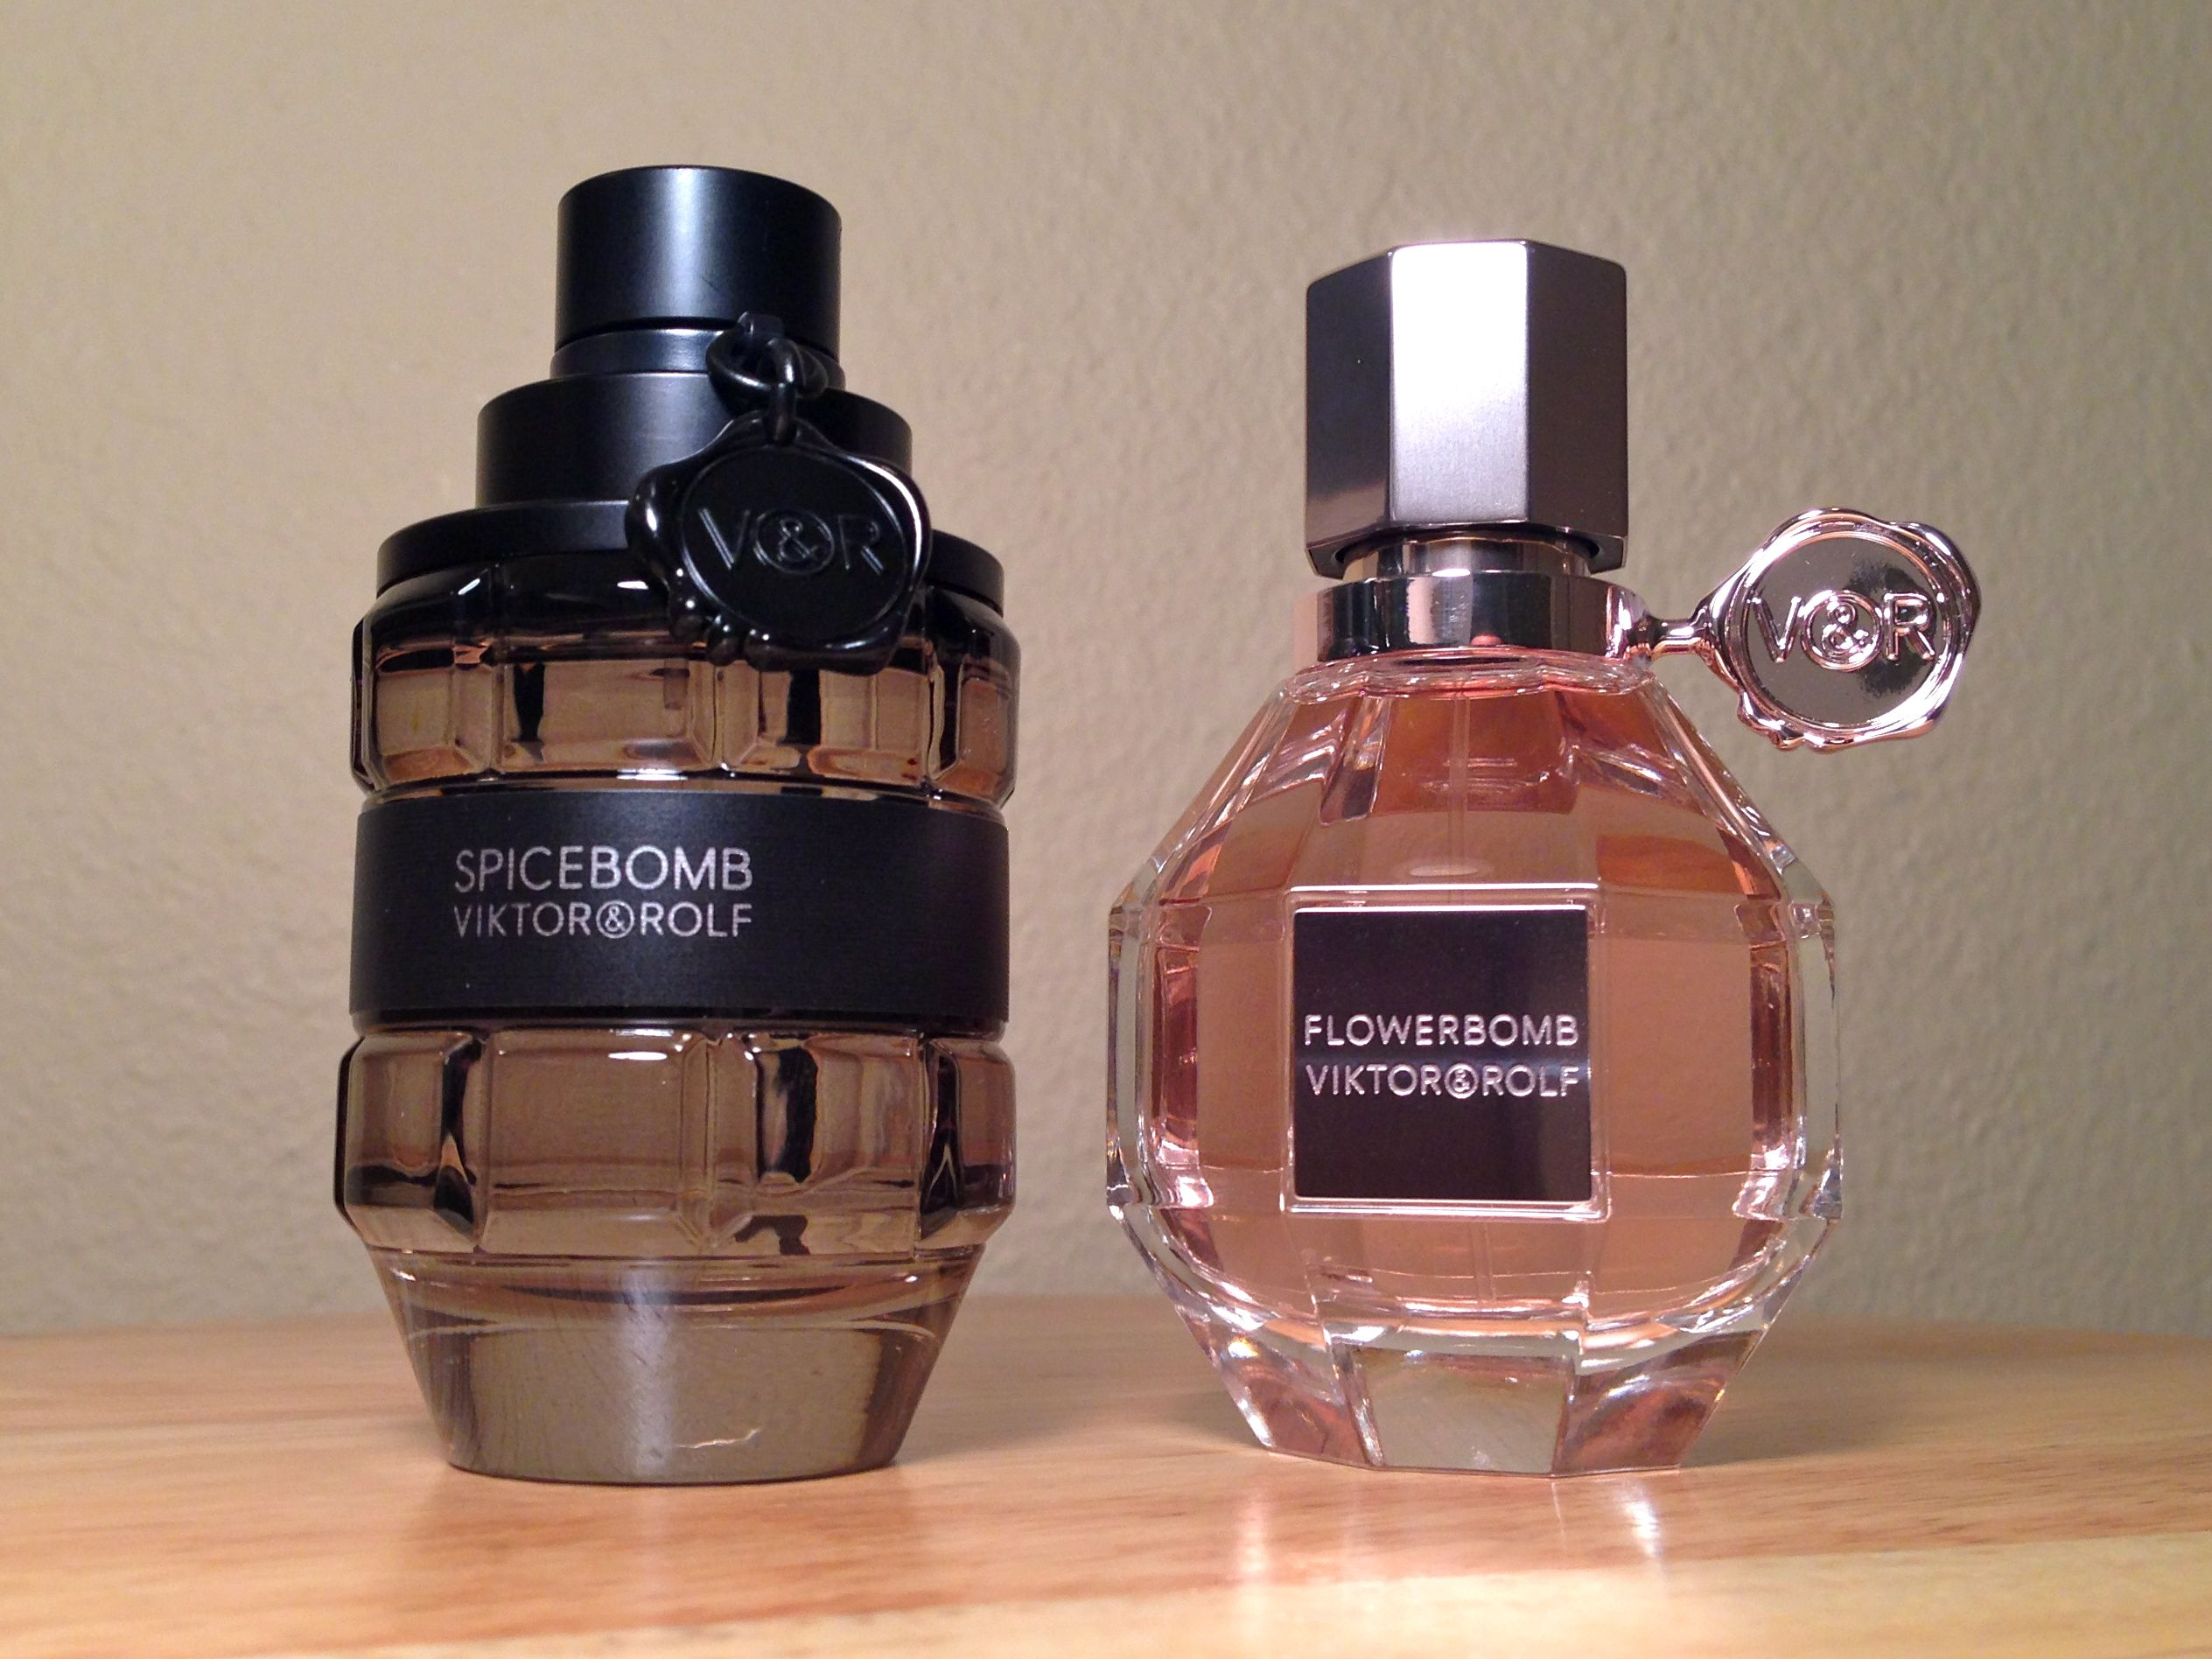 His & Hers Viktor & Rolf cologne and perfume spice flower